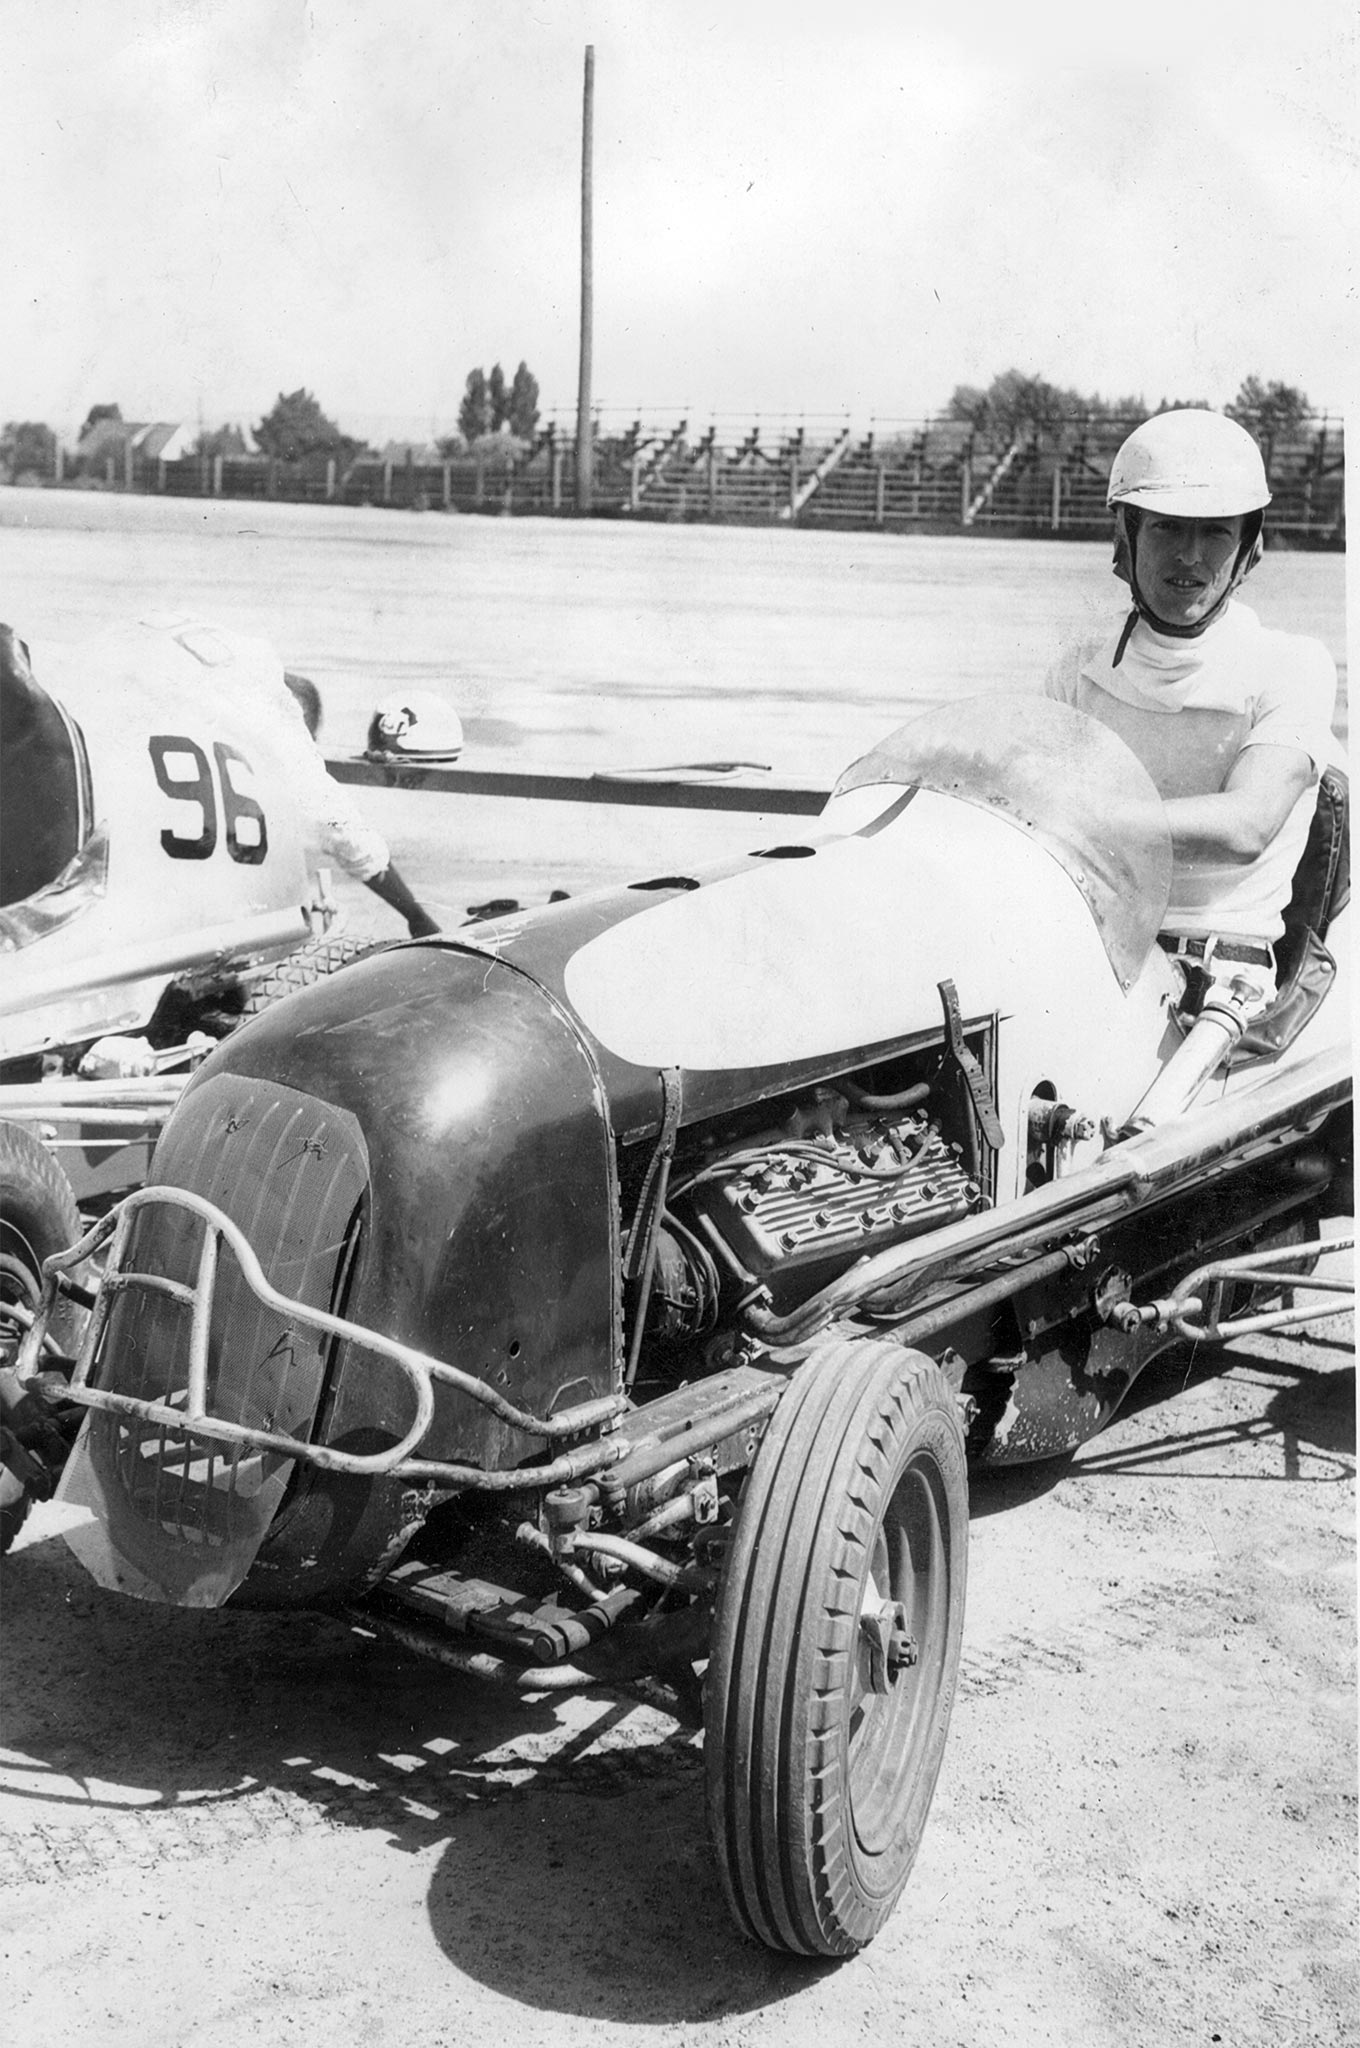 Scotty driving another team's Sprint Car, presumably at Spokane's Division and Francis track or in Baker City, Oregon. At Baker City, dust crept through poor-quality goggles, effectively blinding him, but he finished third.